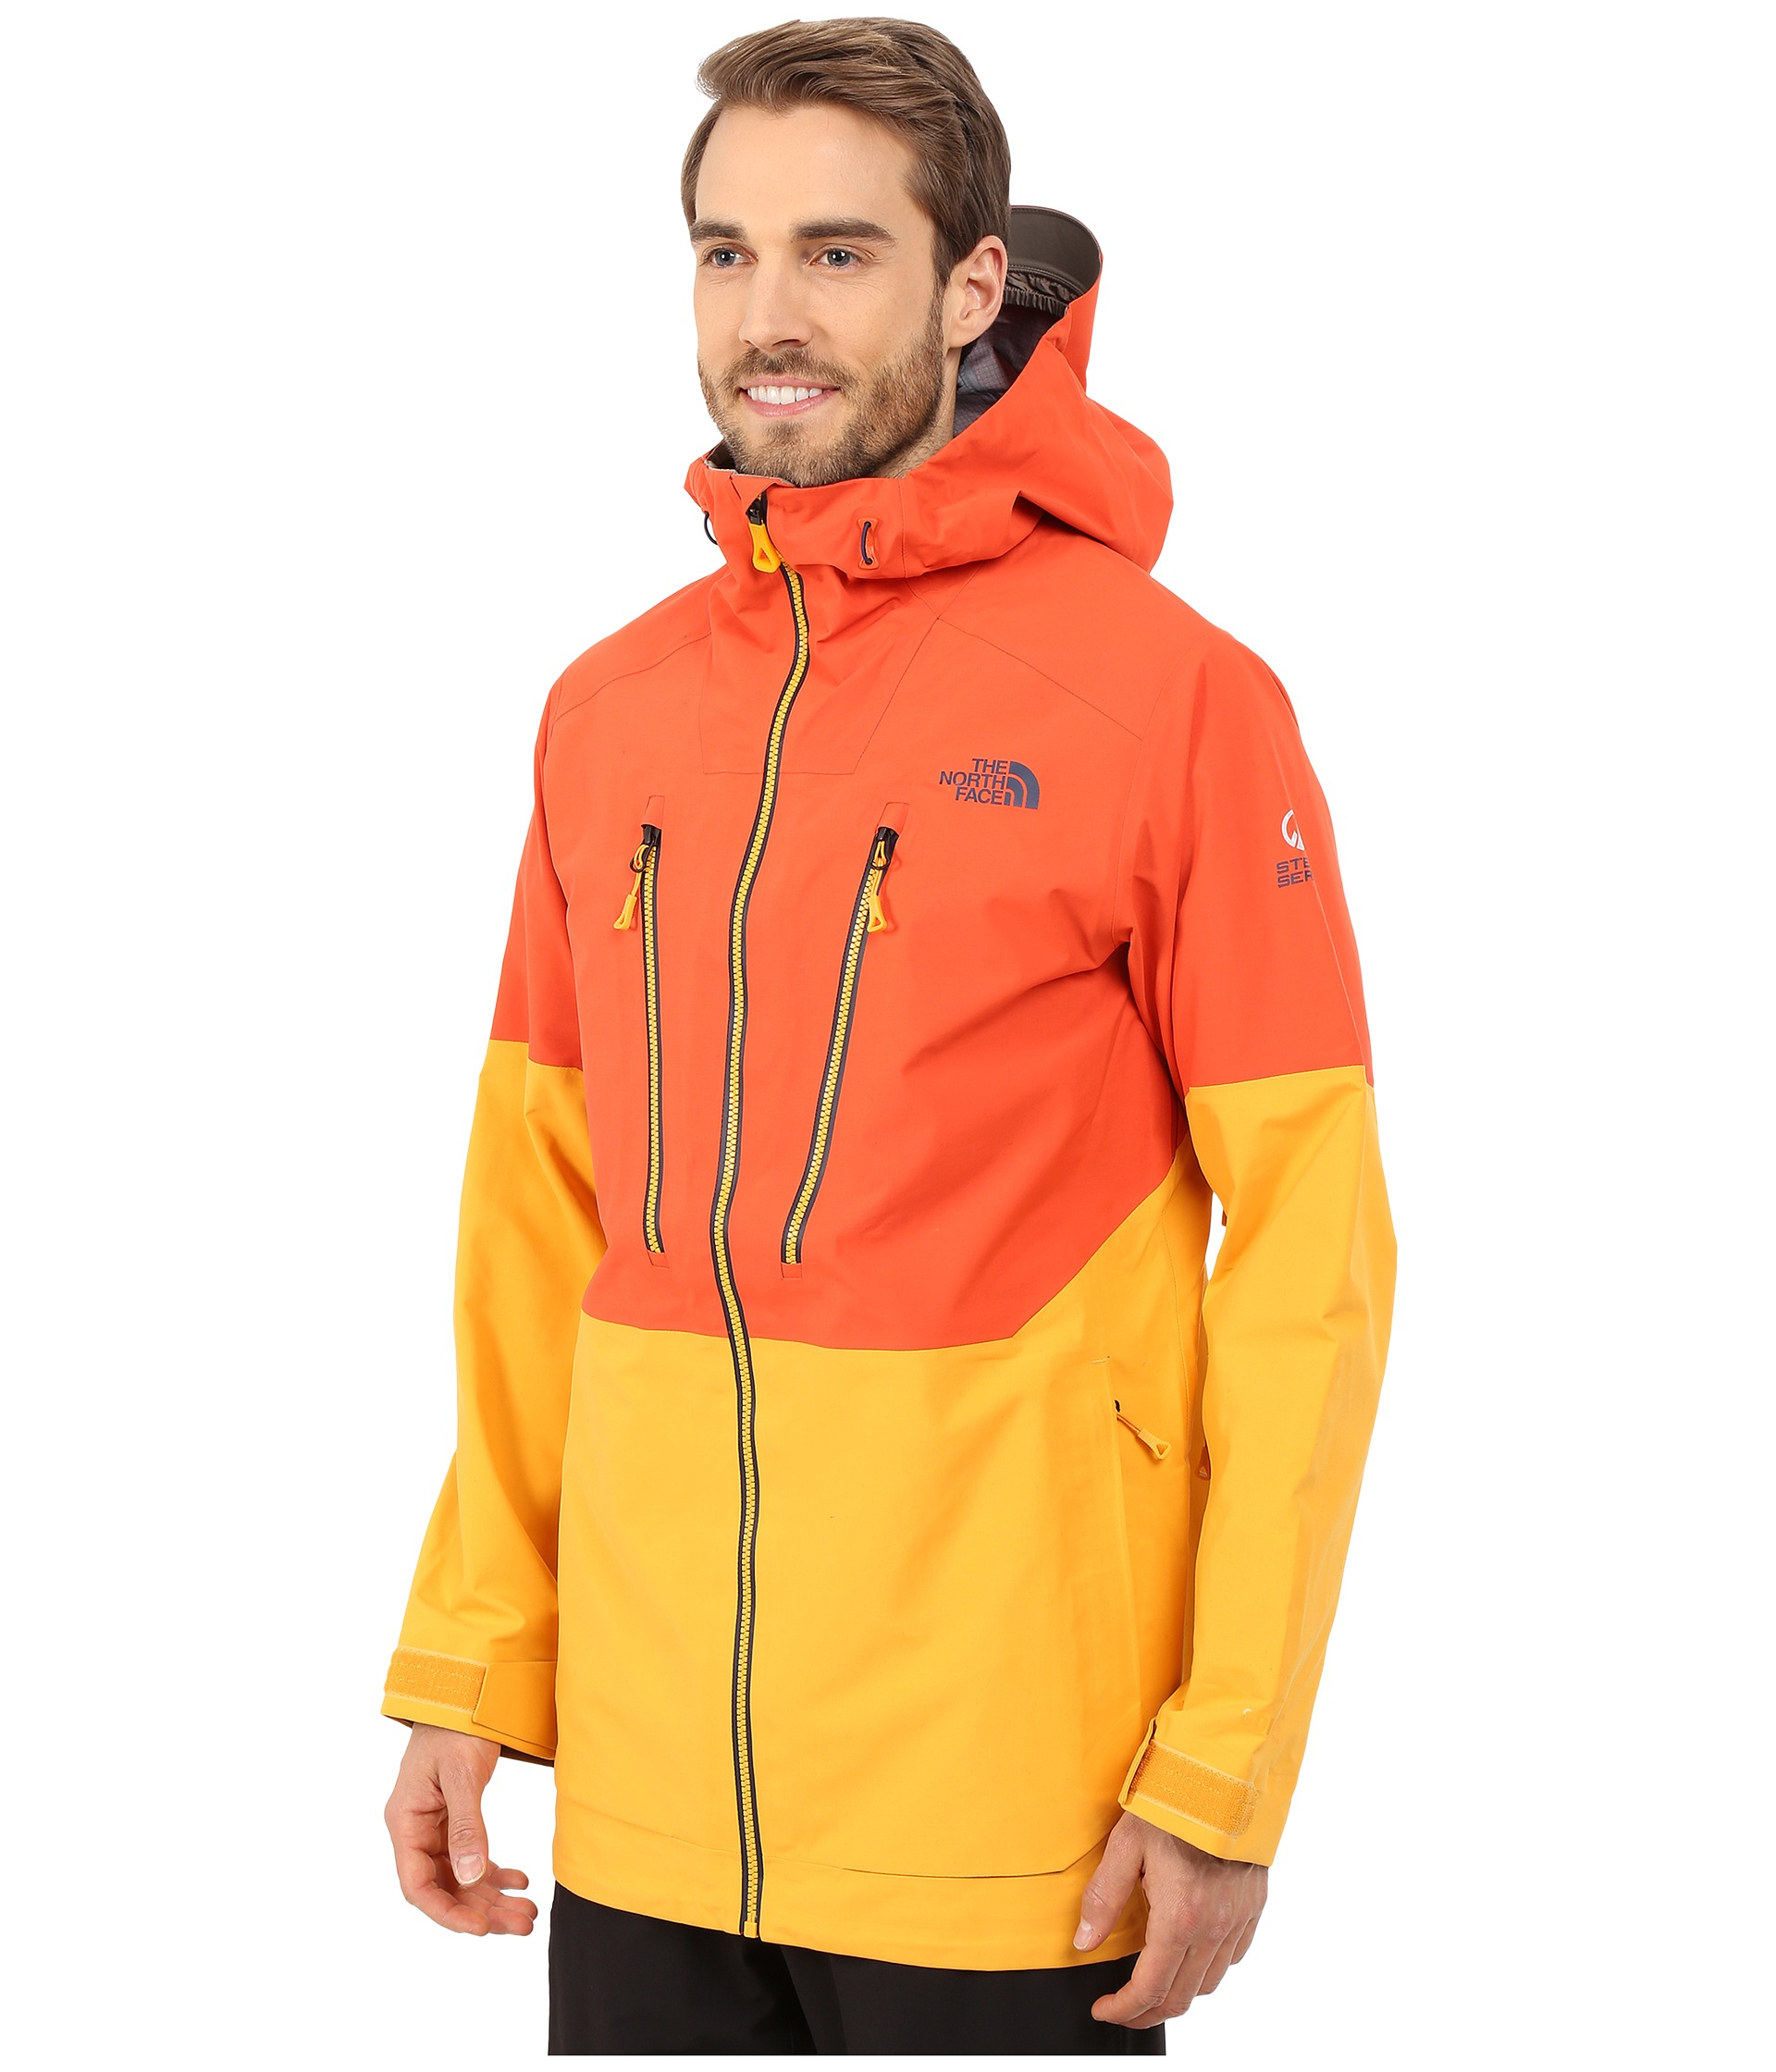 The North Face Free Thinker Jacket In Orange For Men